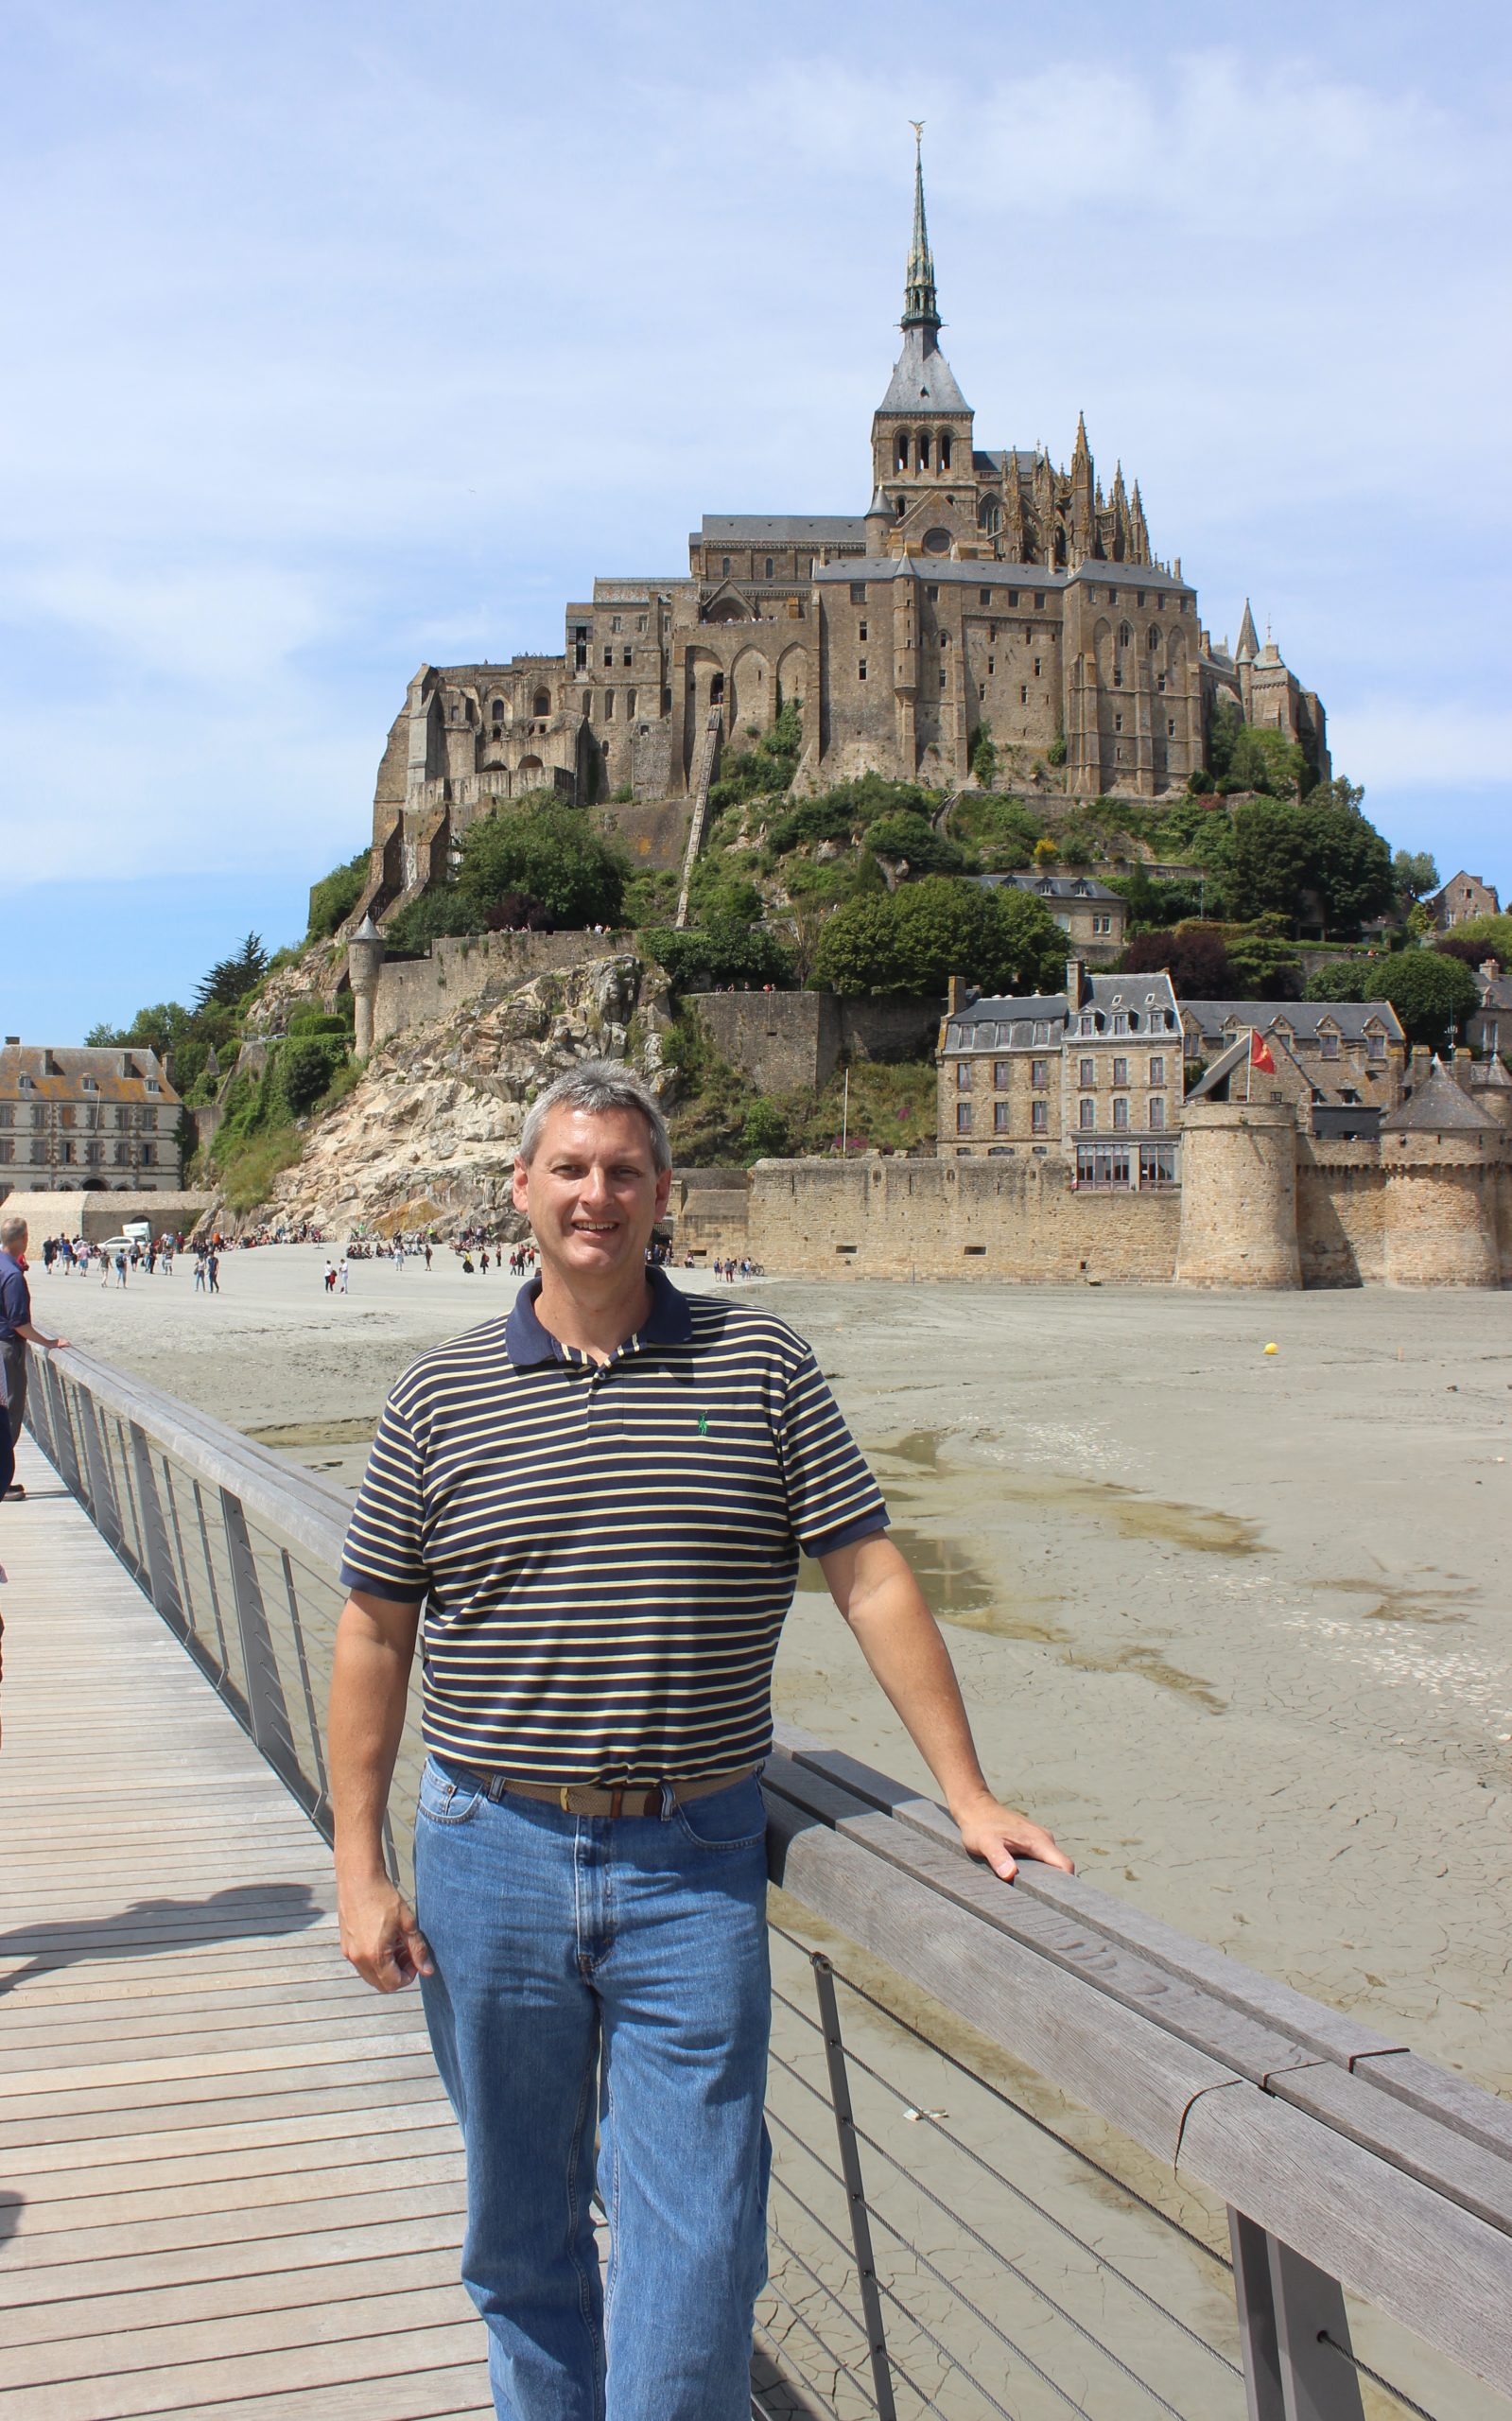 A 2015 France Site visit takes Greg to the historic Benedictine abbey of Mont-Saint-Michel, an UNESCO World Heritage site dating back to the 8th century.